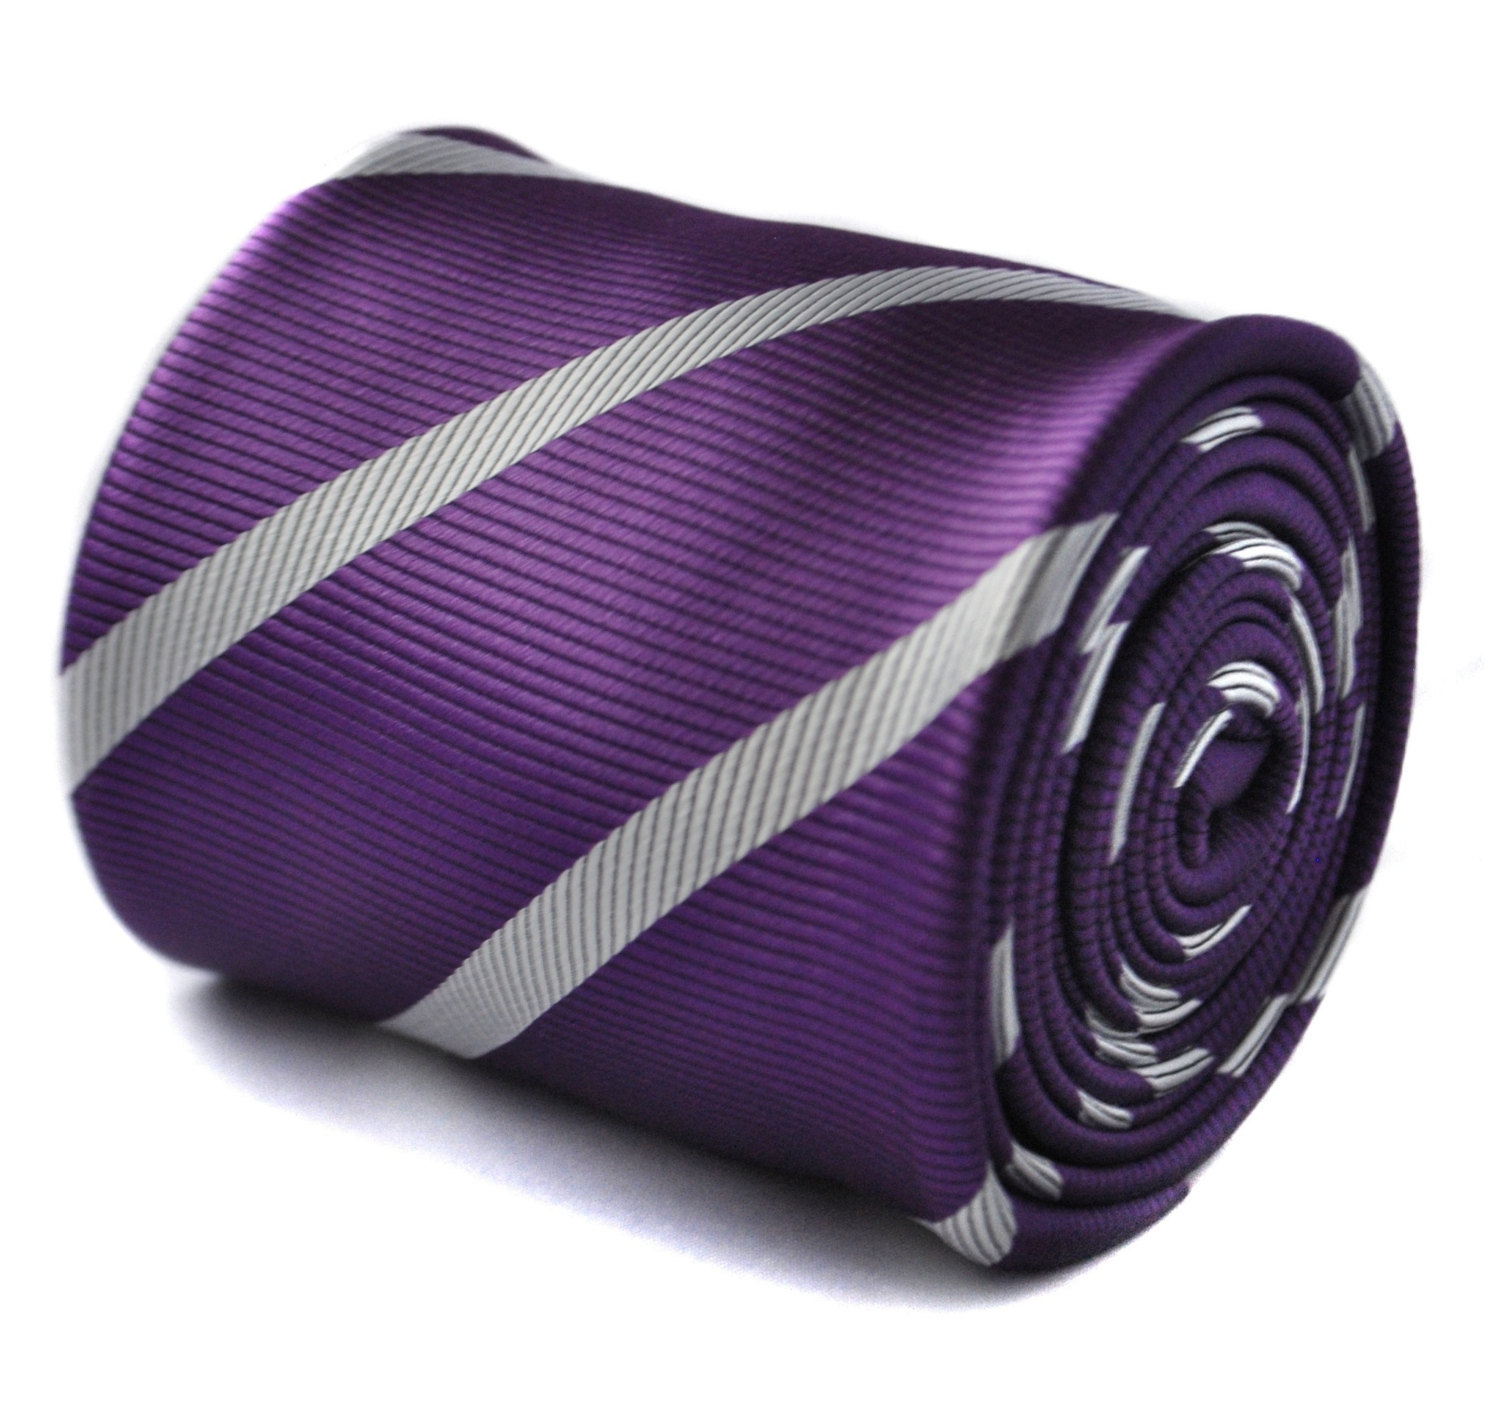 cadbury purple and white club striped tie with floral design to the rear by Fred